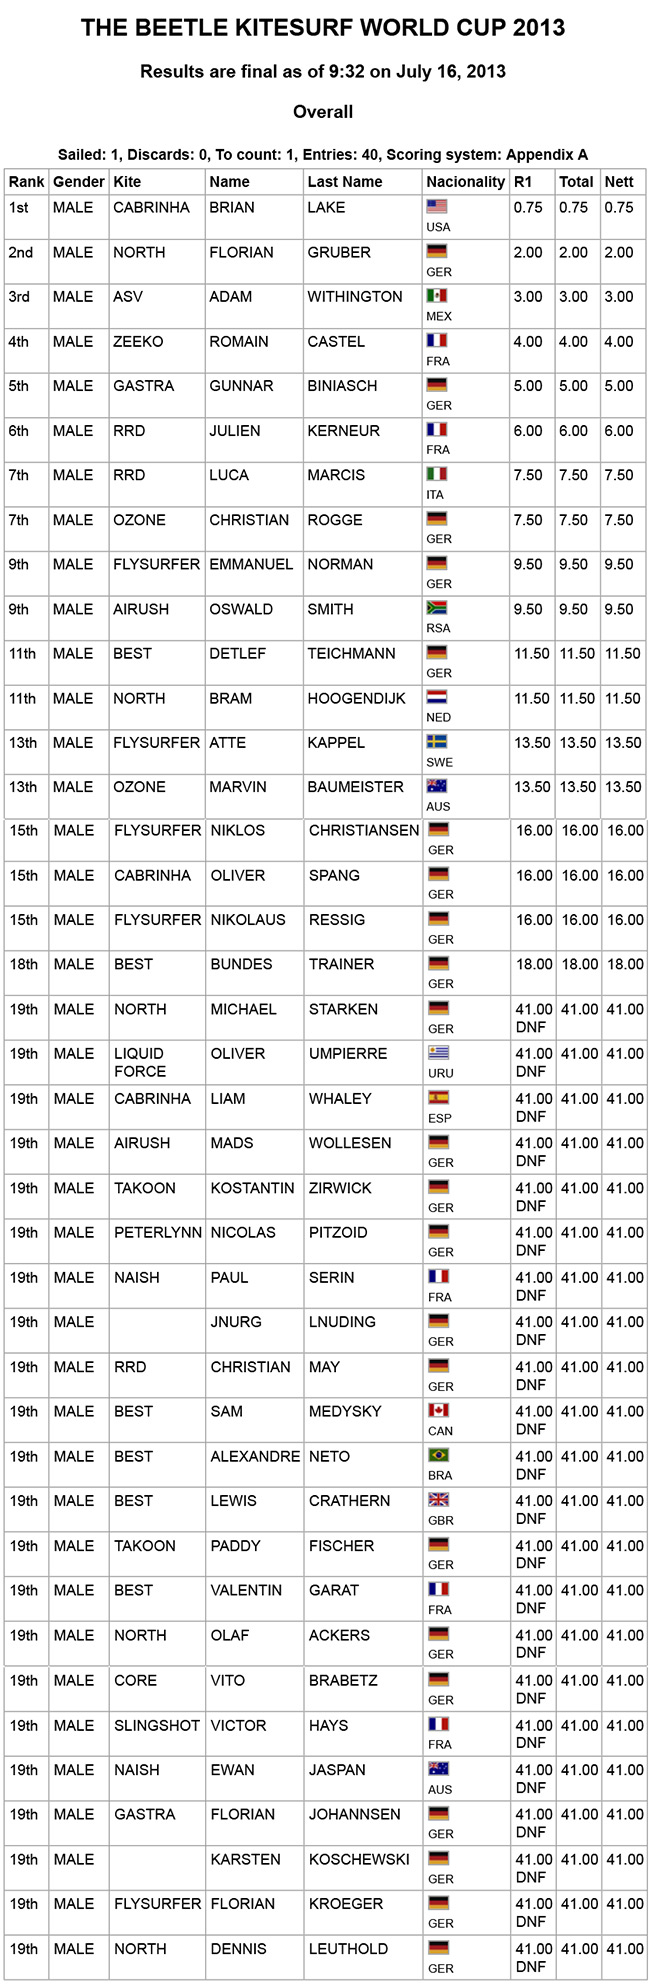 Men-slalom-Results-THE-BEETLE-KITESURF-WORLD-CUP-2013---1.jpg